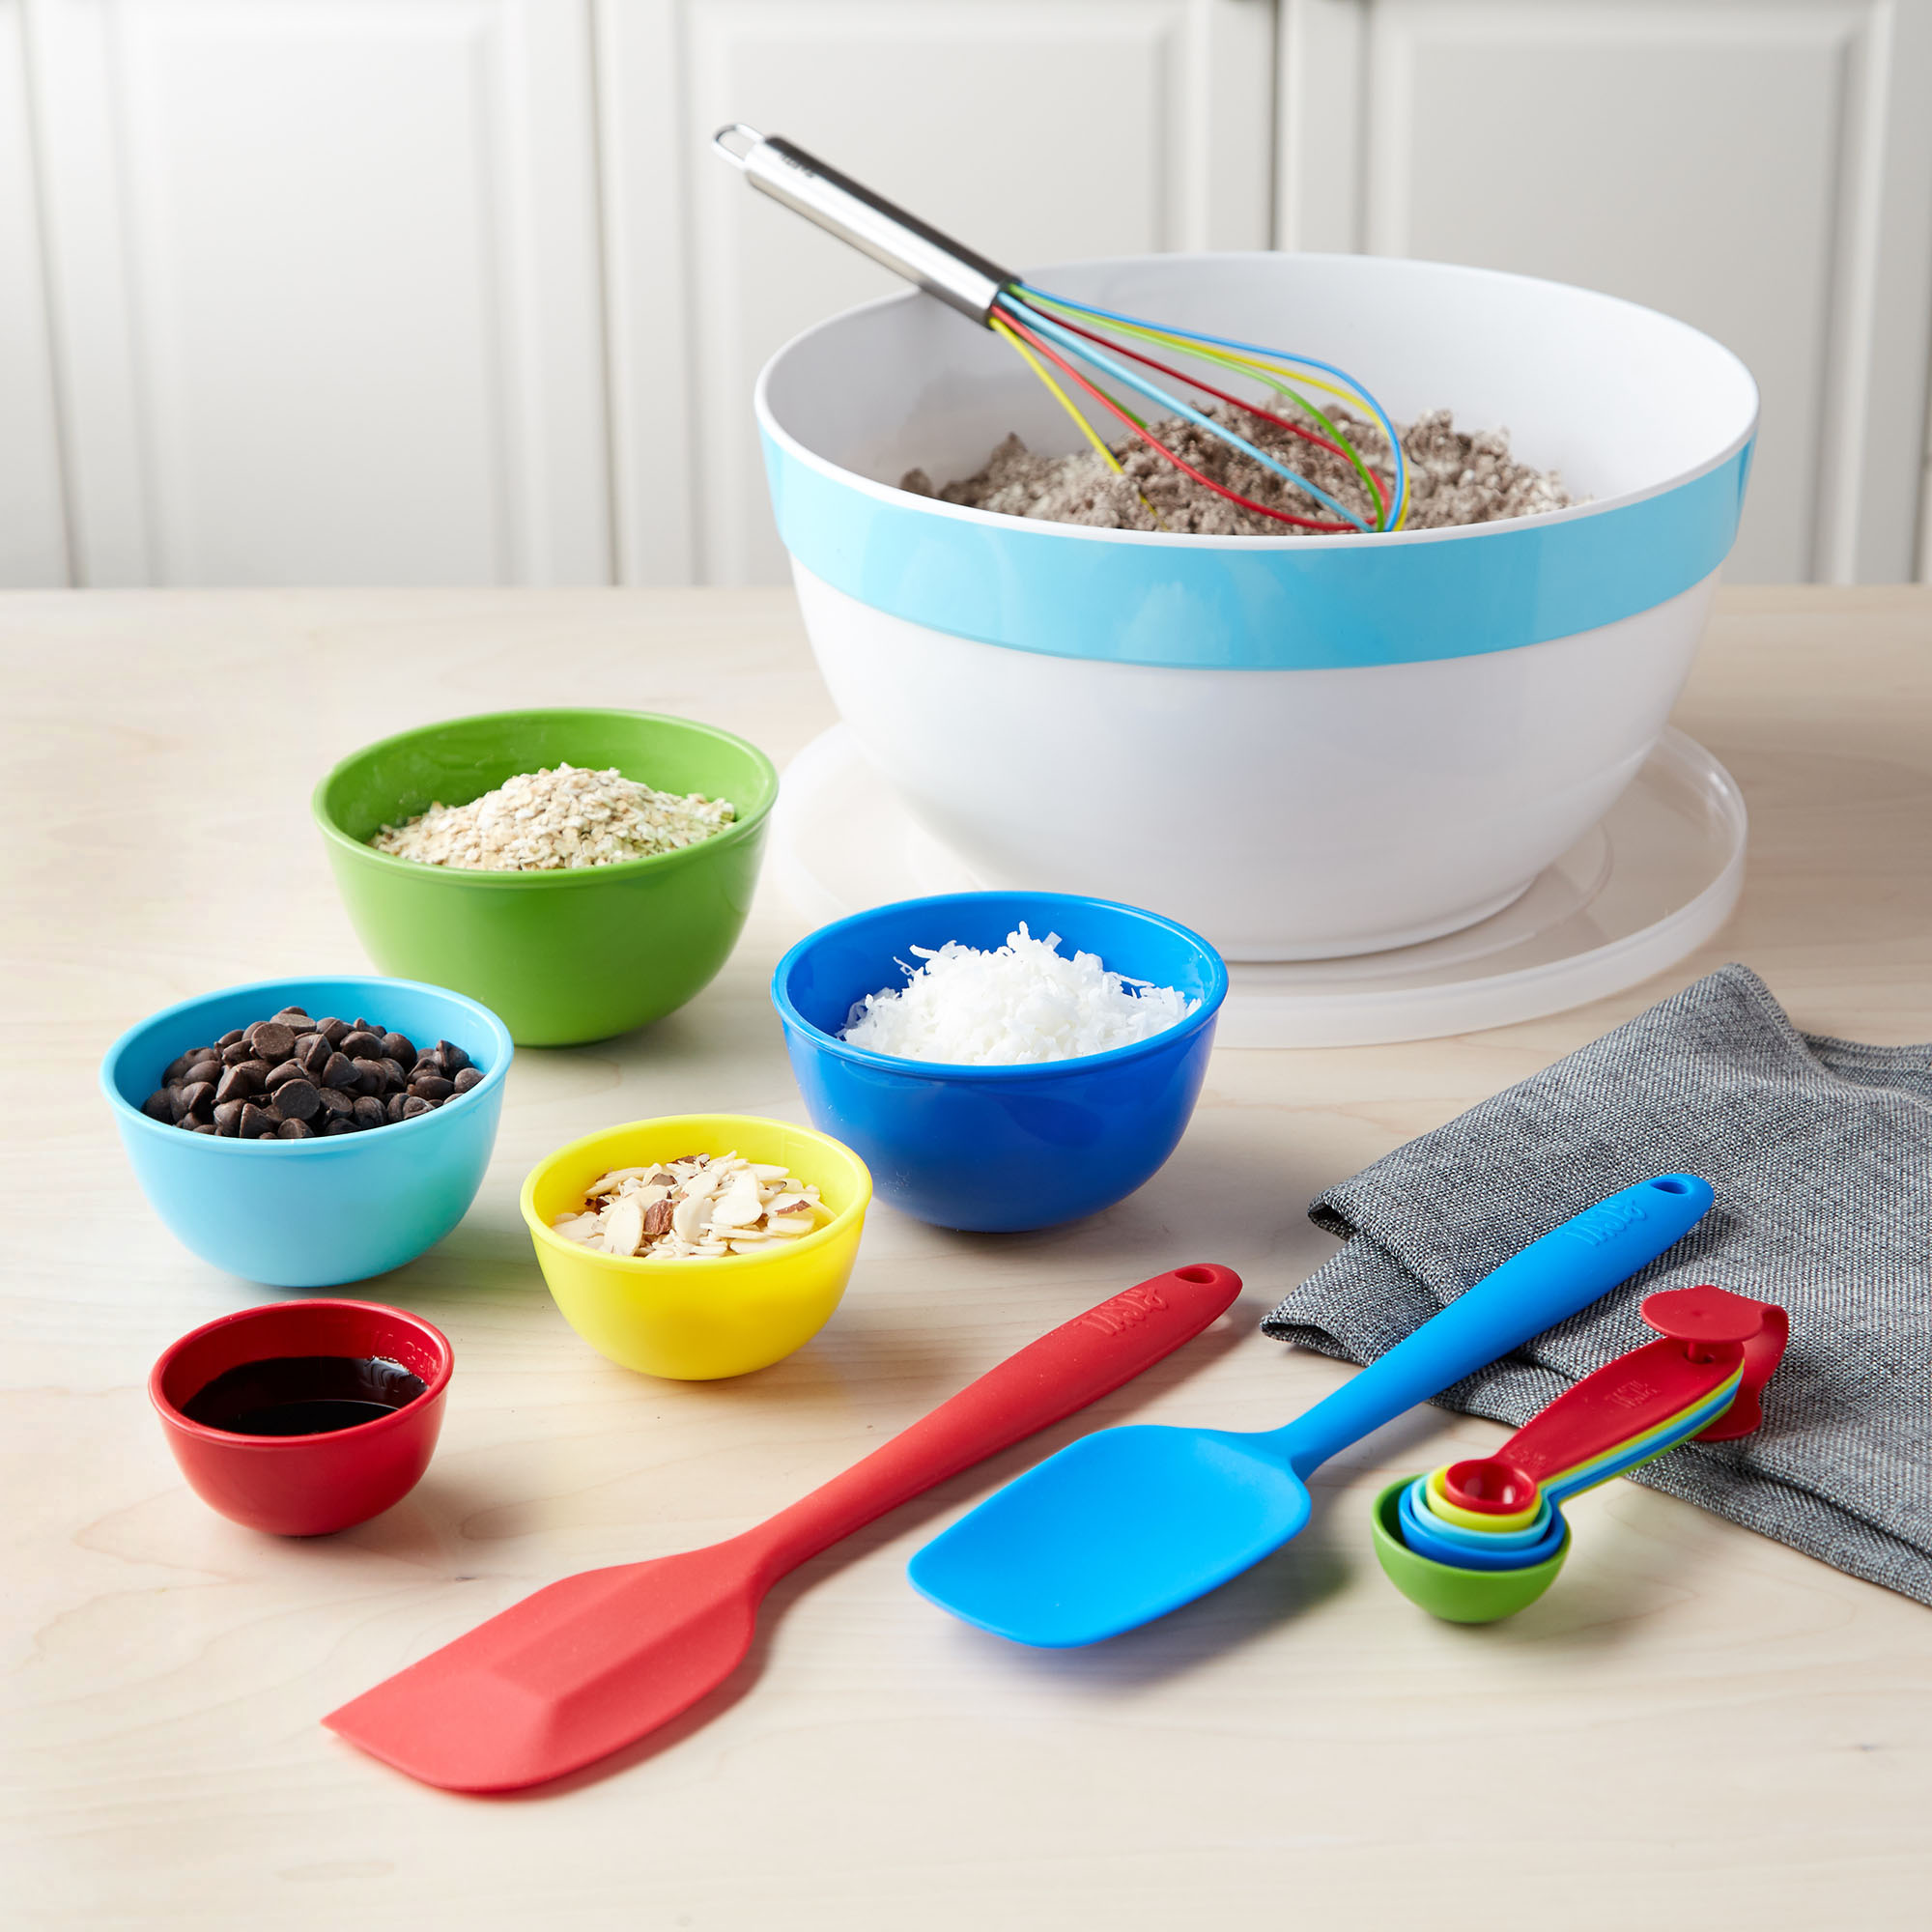 Tasty 15pc Melamine Bowl and Baking Set